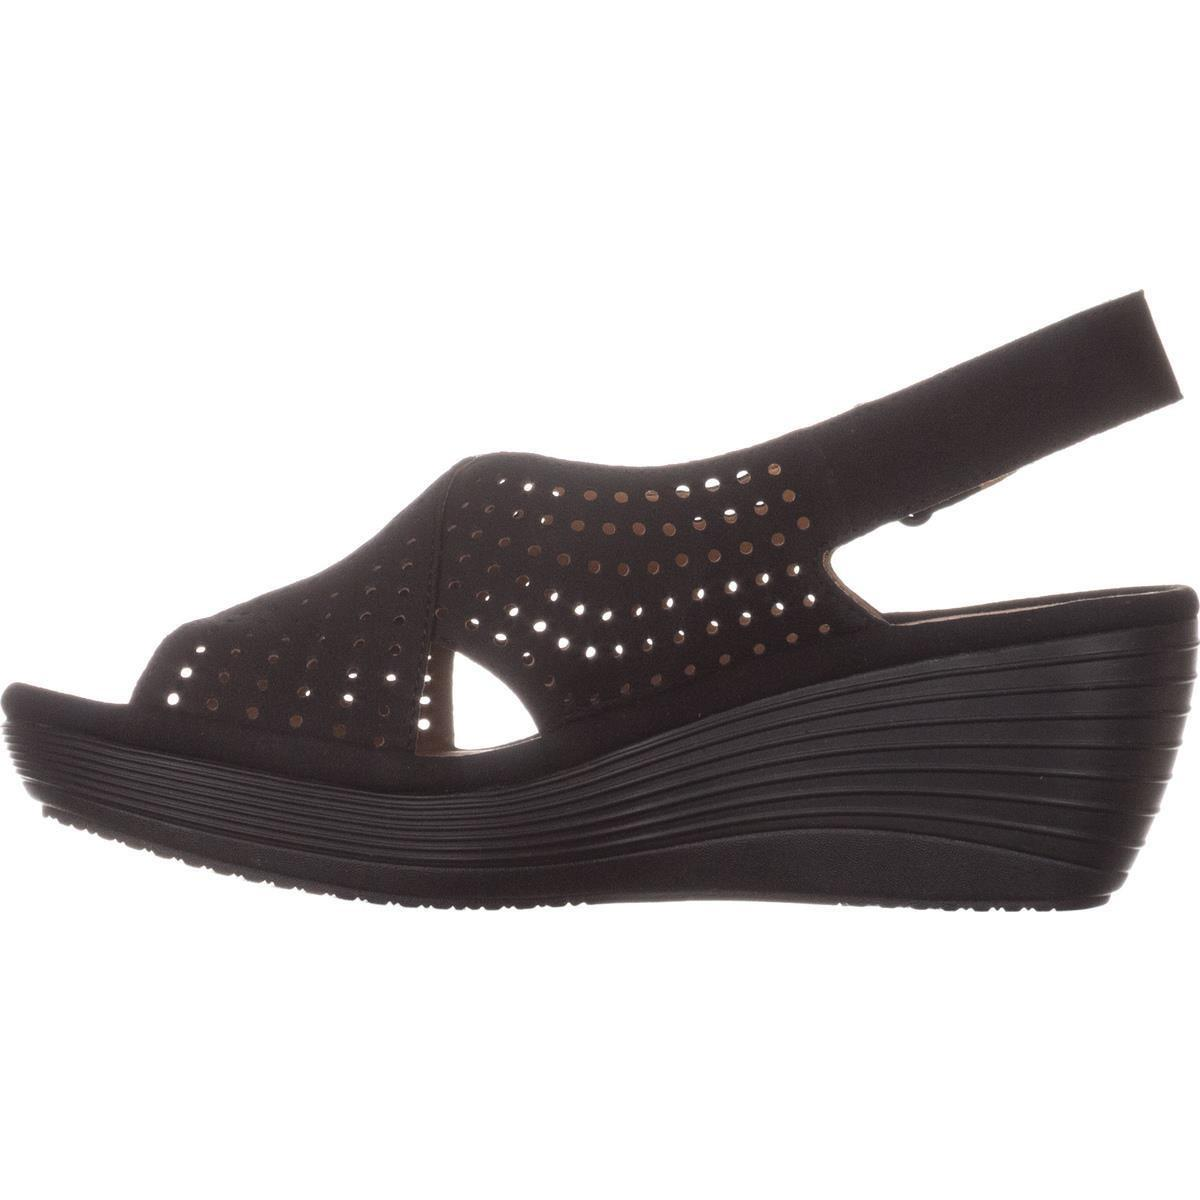 aa008f4d872 Lyst - Clarks Reedly Variel Wedge Sandals in Black